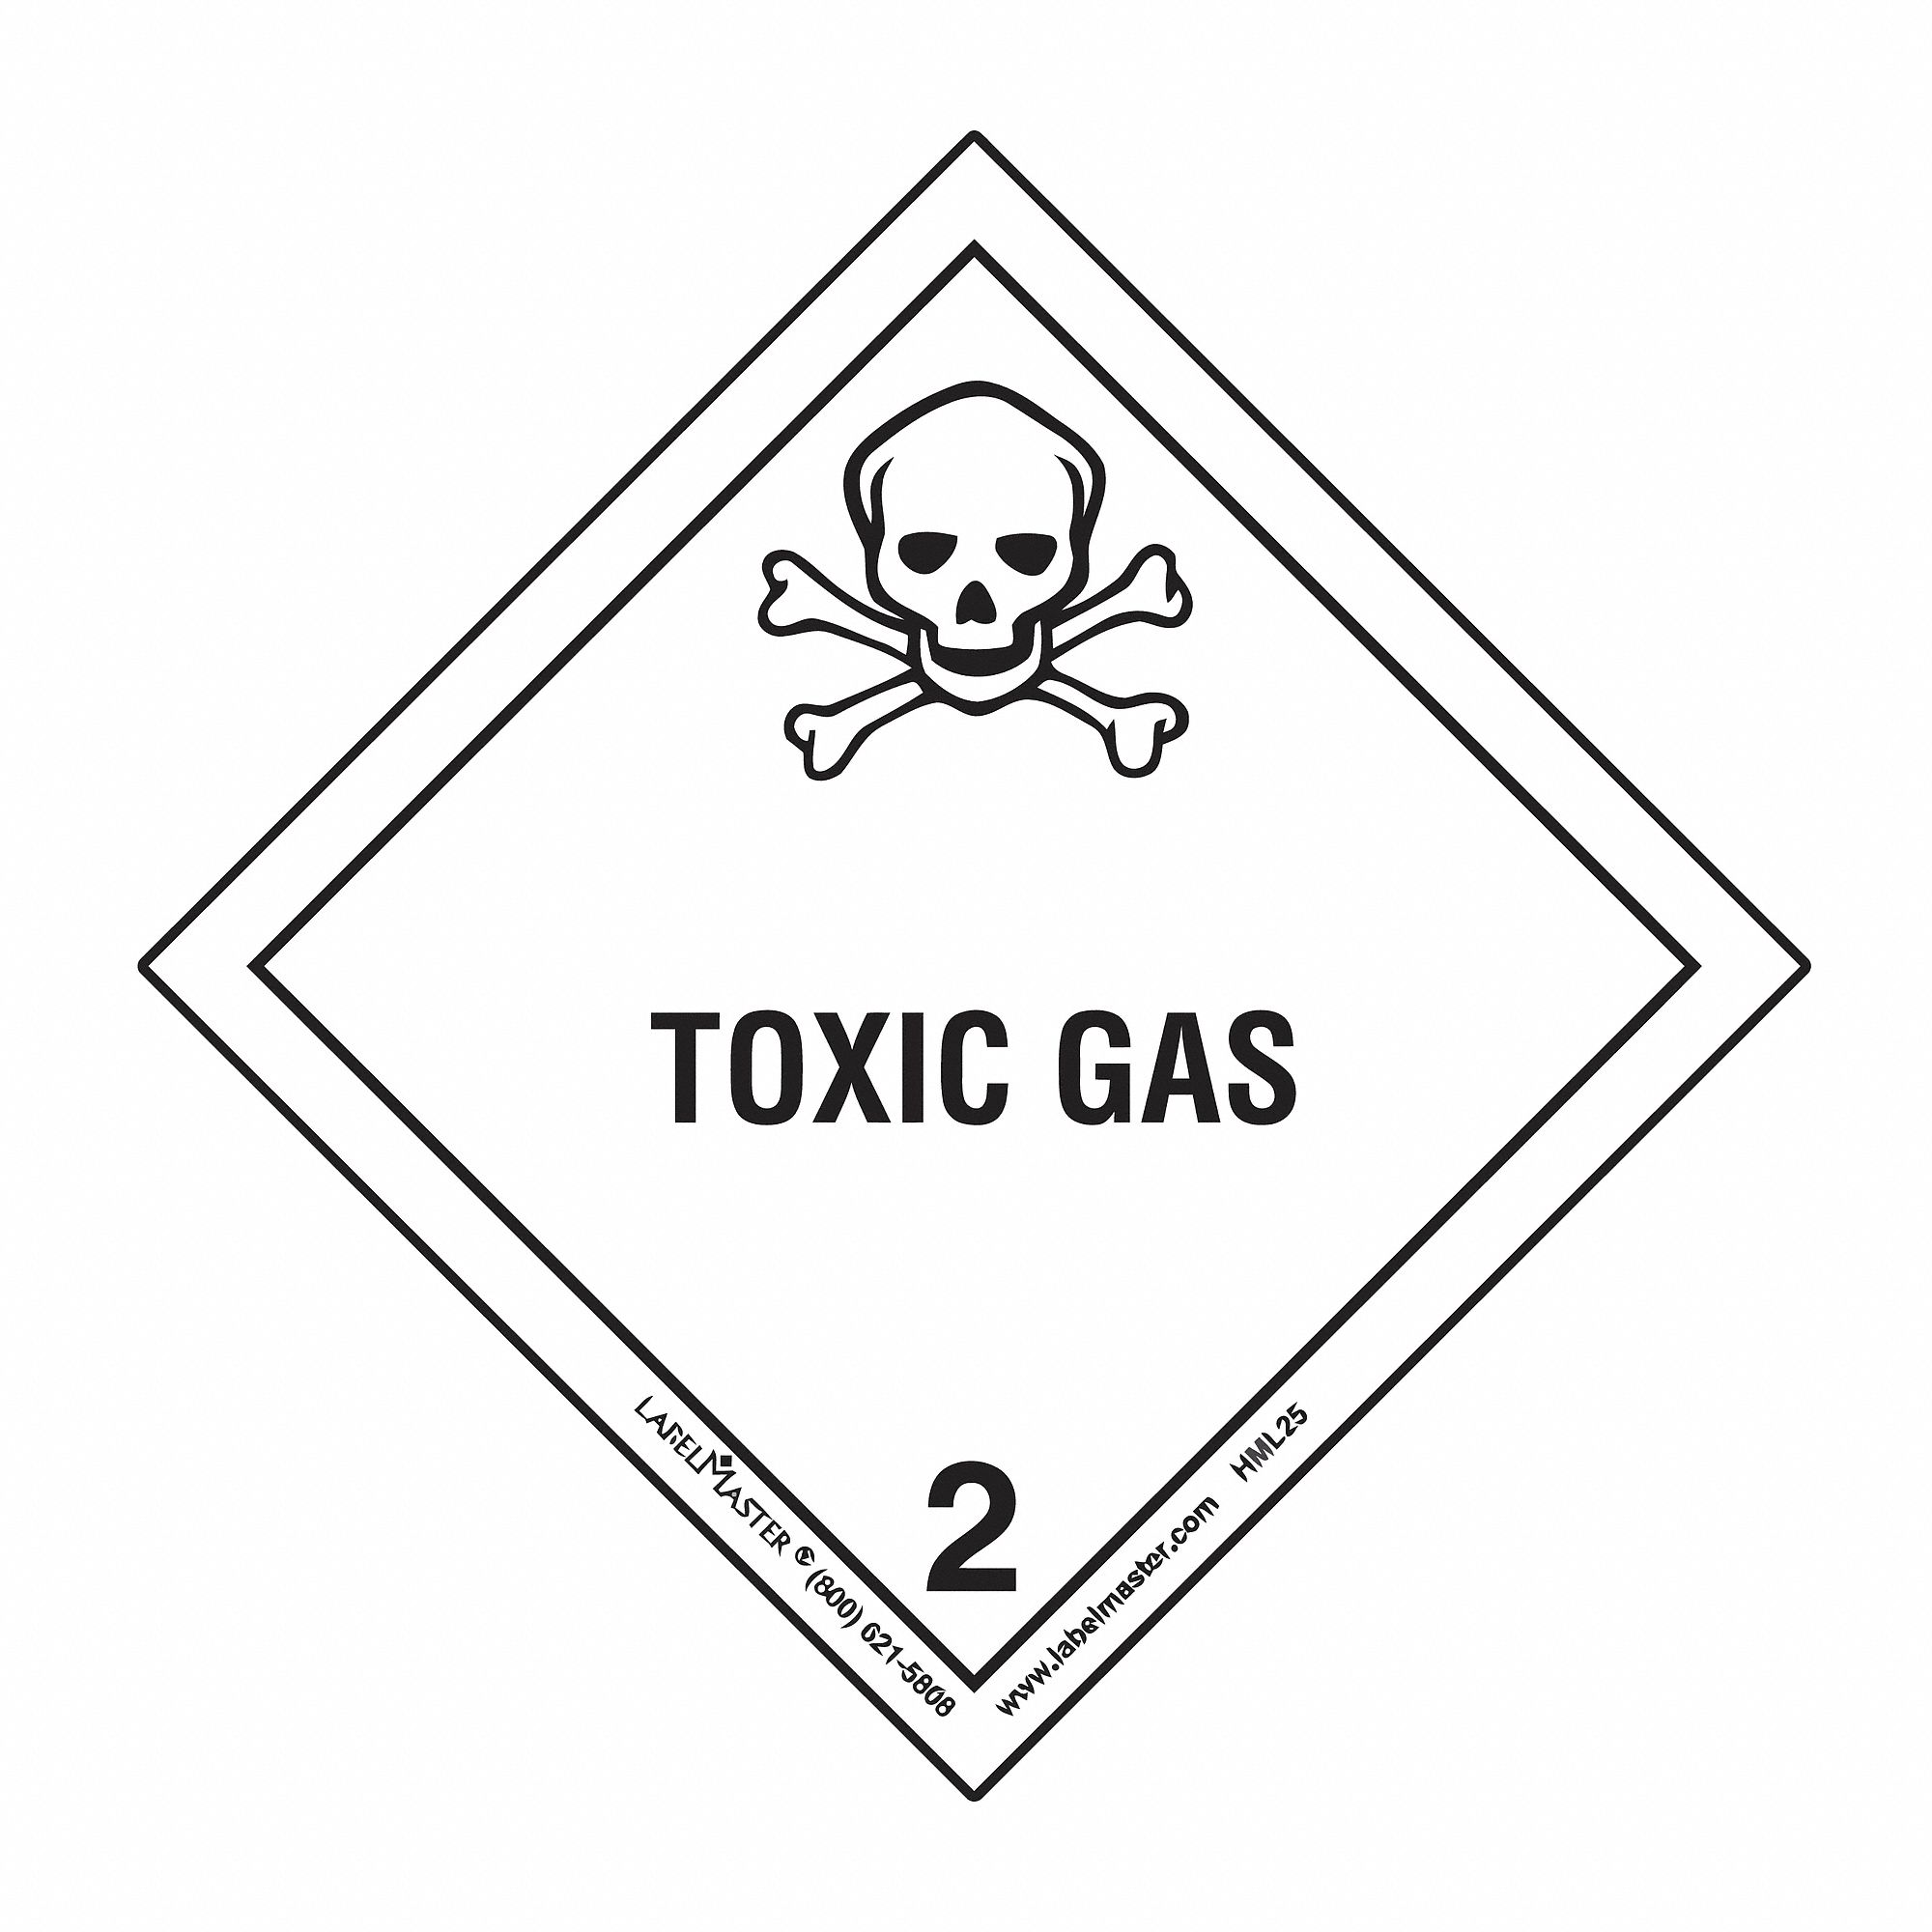 labelmaster toxic gas label  100mmx100mm  paper  500